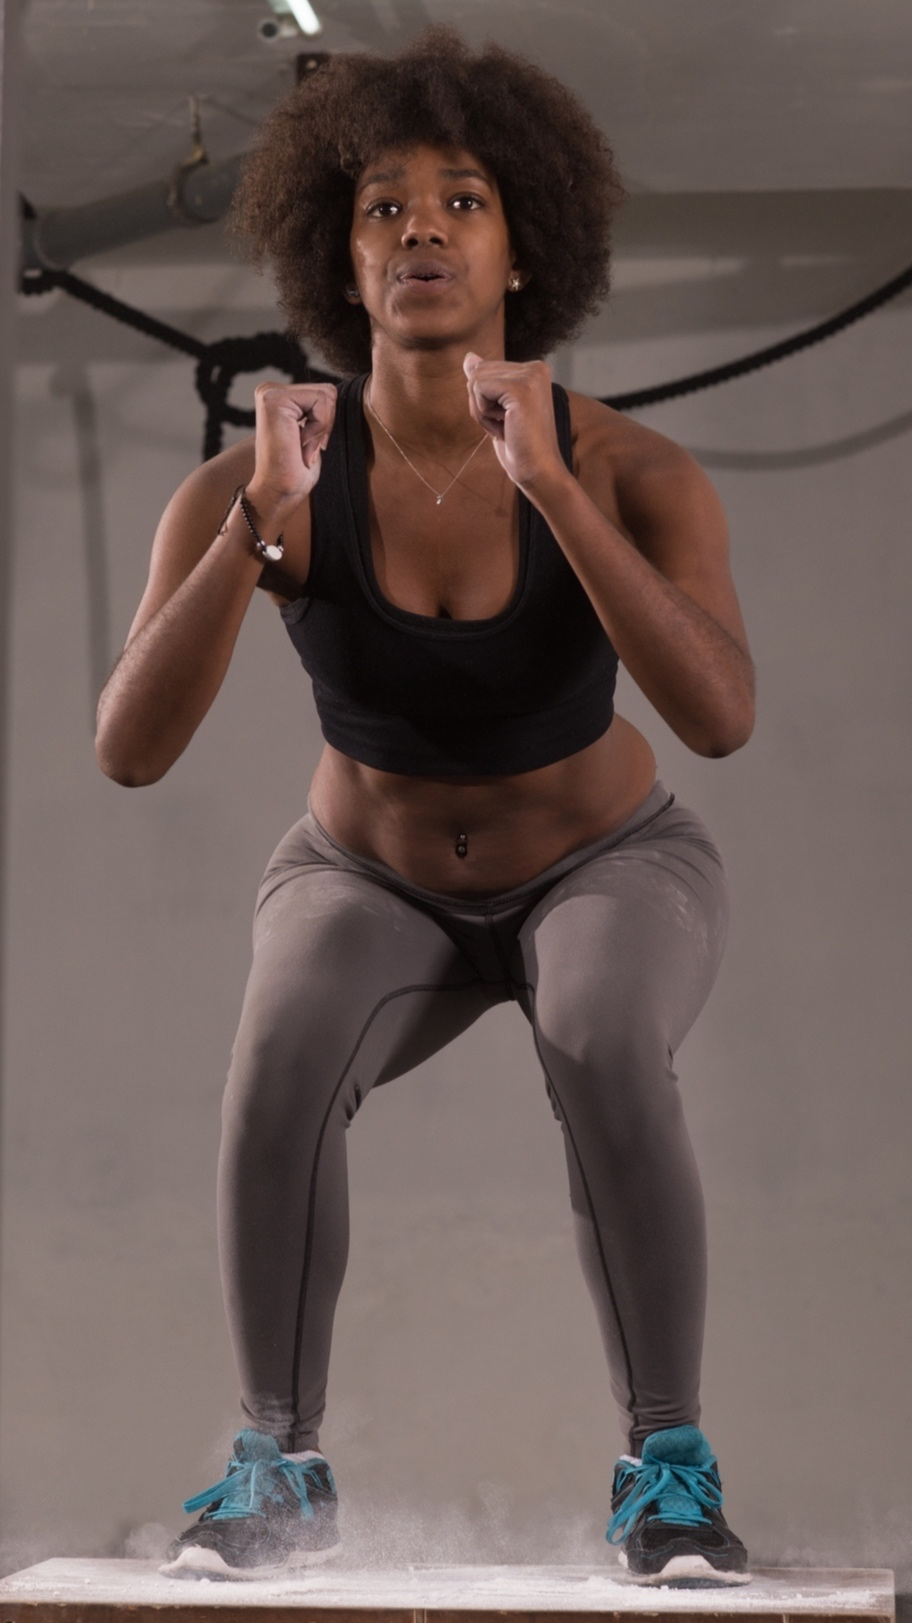 Colleyville body positive fitness personal training